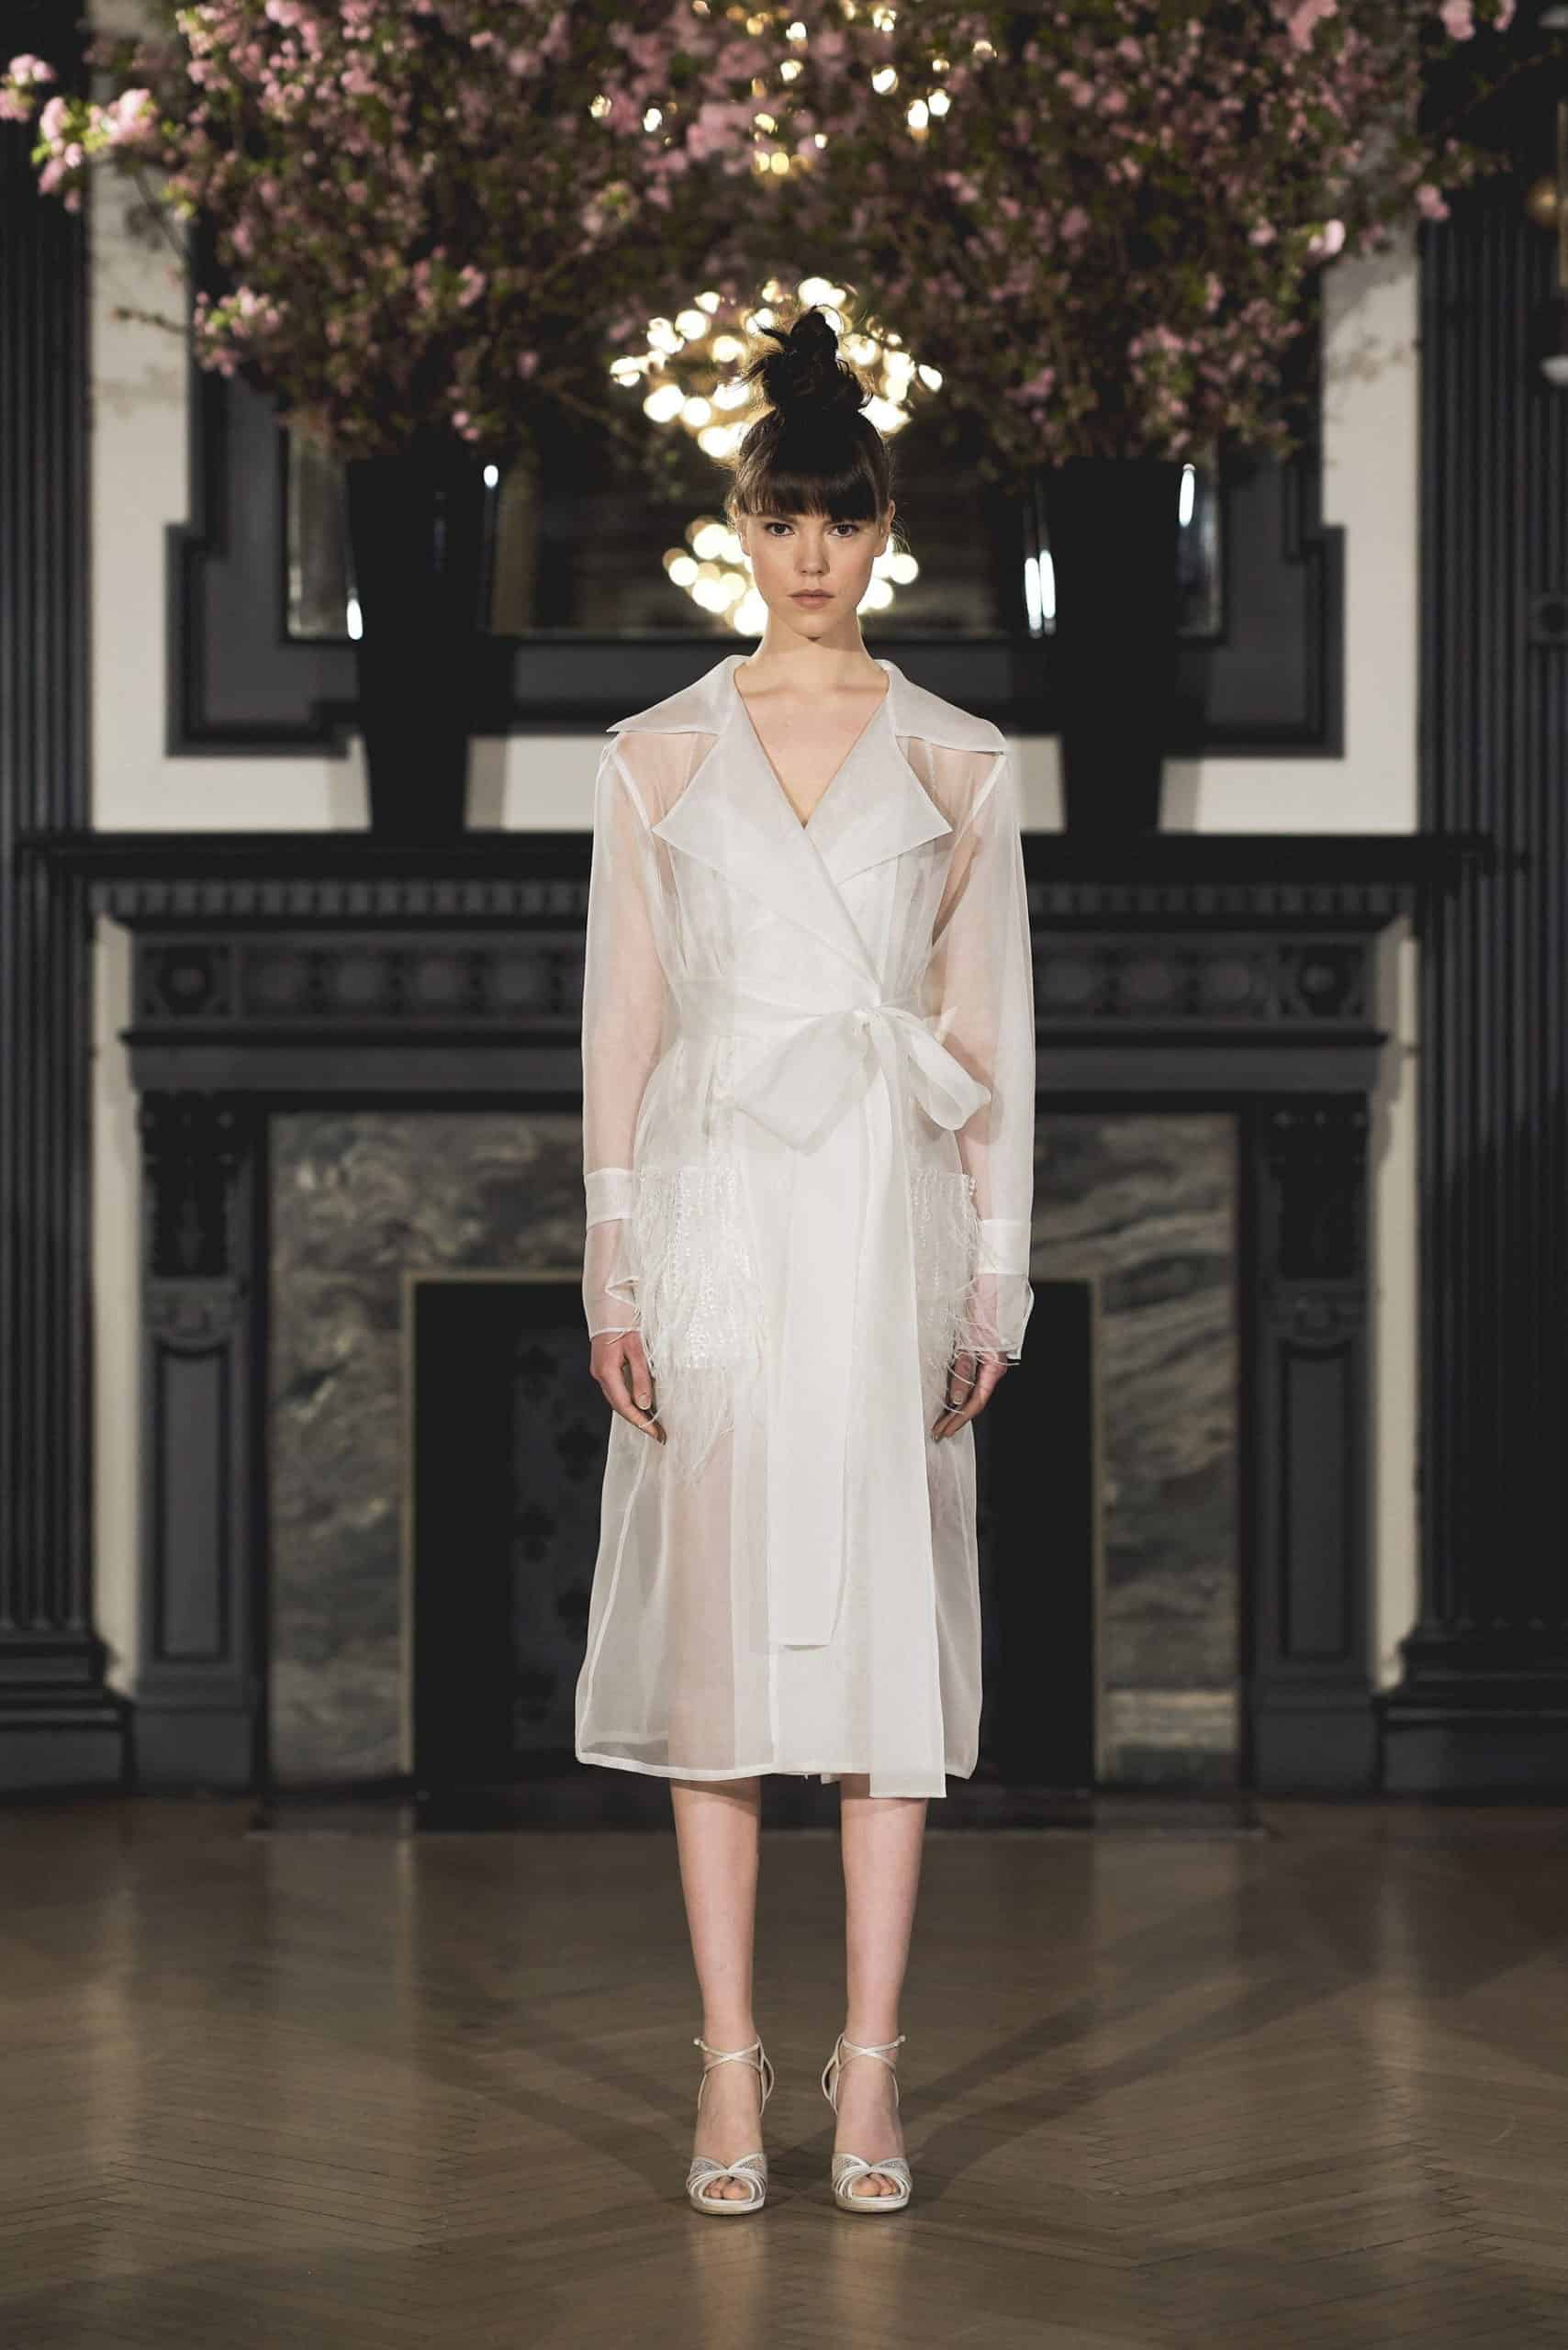 wedding dress with a sea-through jacket by Ines Di Santo